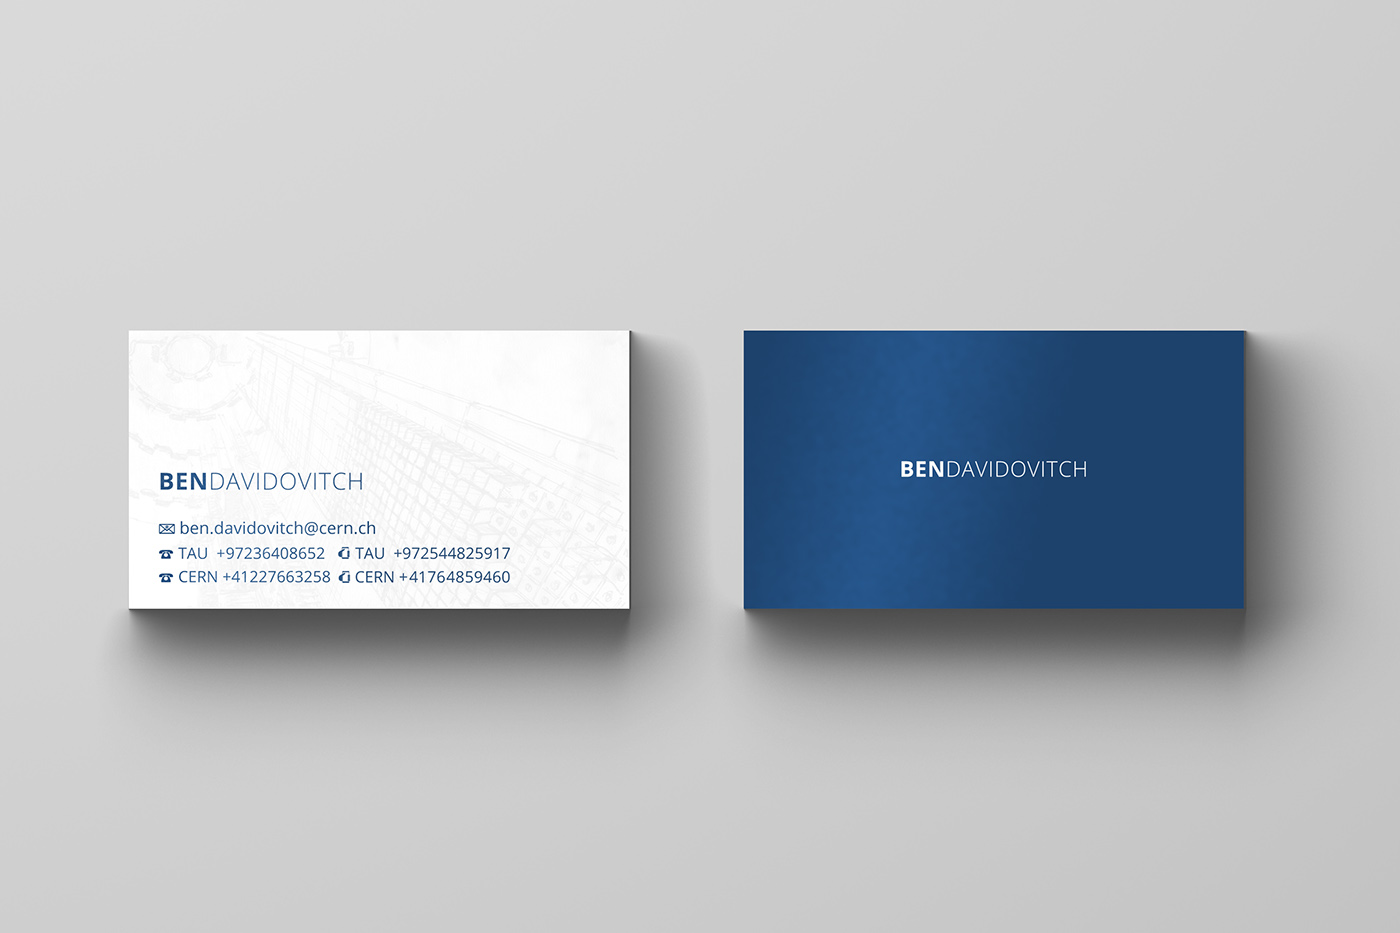 Business card for dr in physics on behance business card for a scientist from tel aviv university that also works in cern switzerland name and details are fake for privacy matters colourmoves Image collections